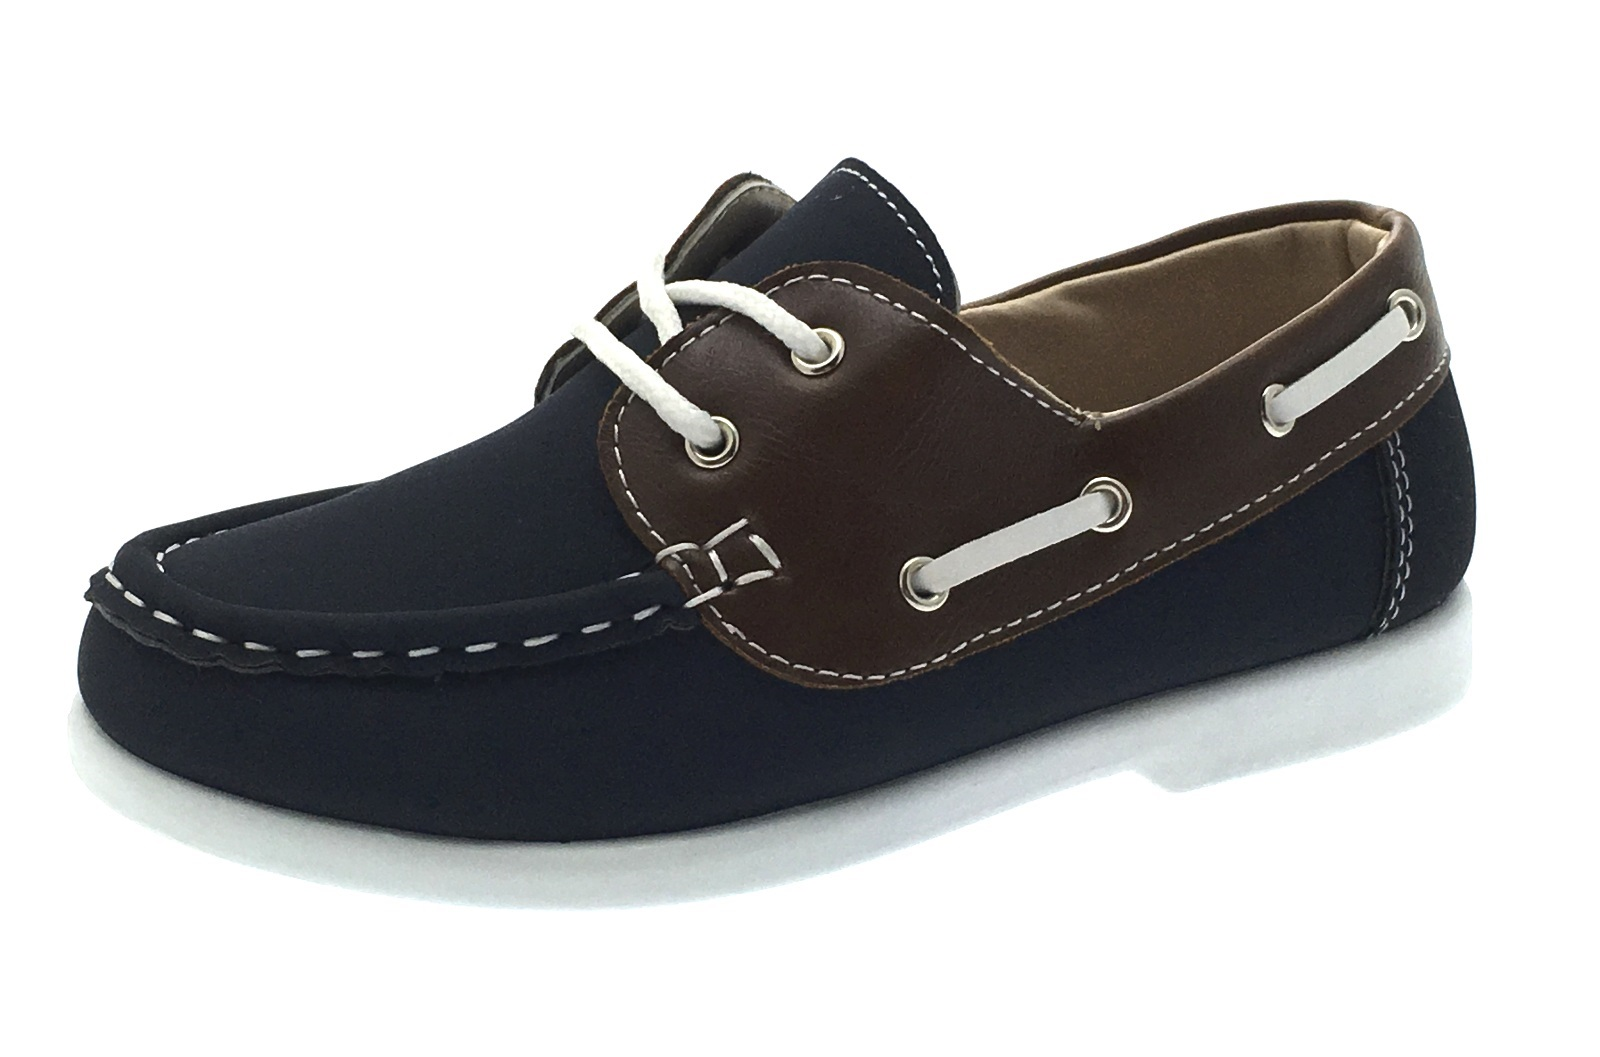 Boys Boat Deck Shoes Slip On Lace Up Loafers Casual Moccasins Party Kids Size | EBay